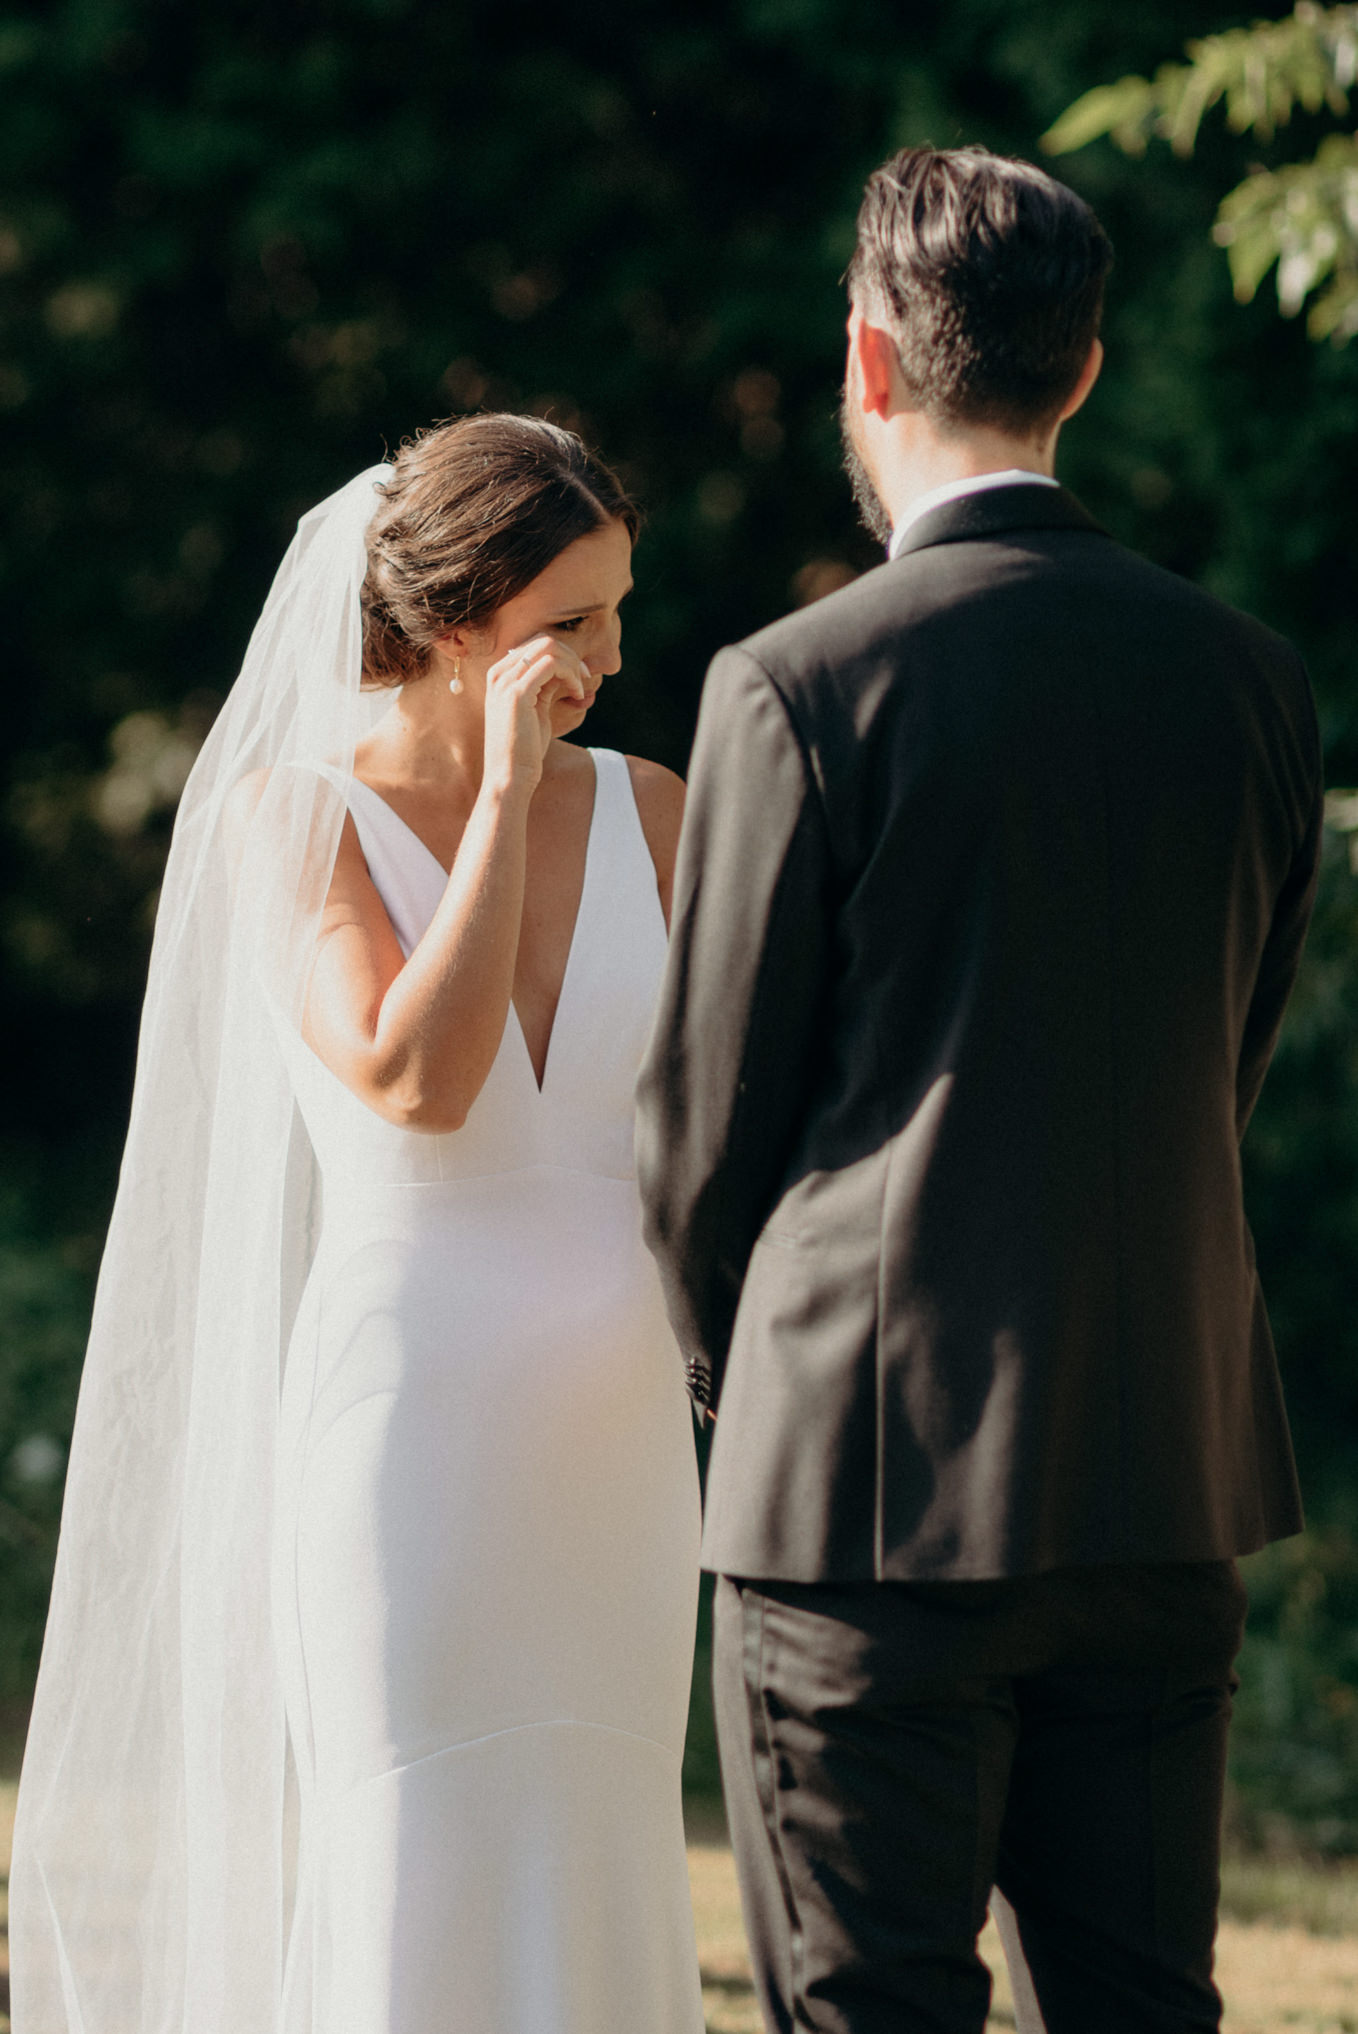 bride wiping away tear during wedding ceremony